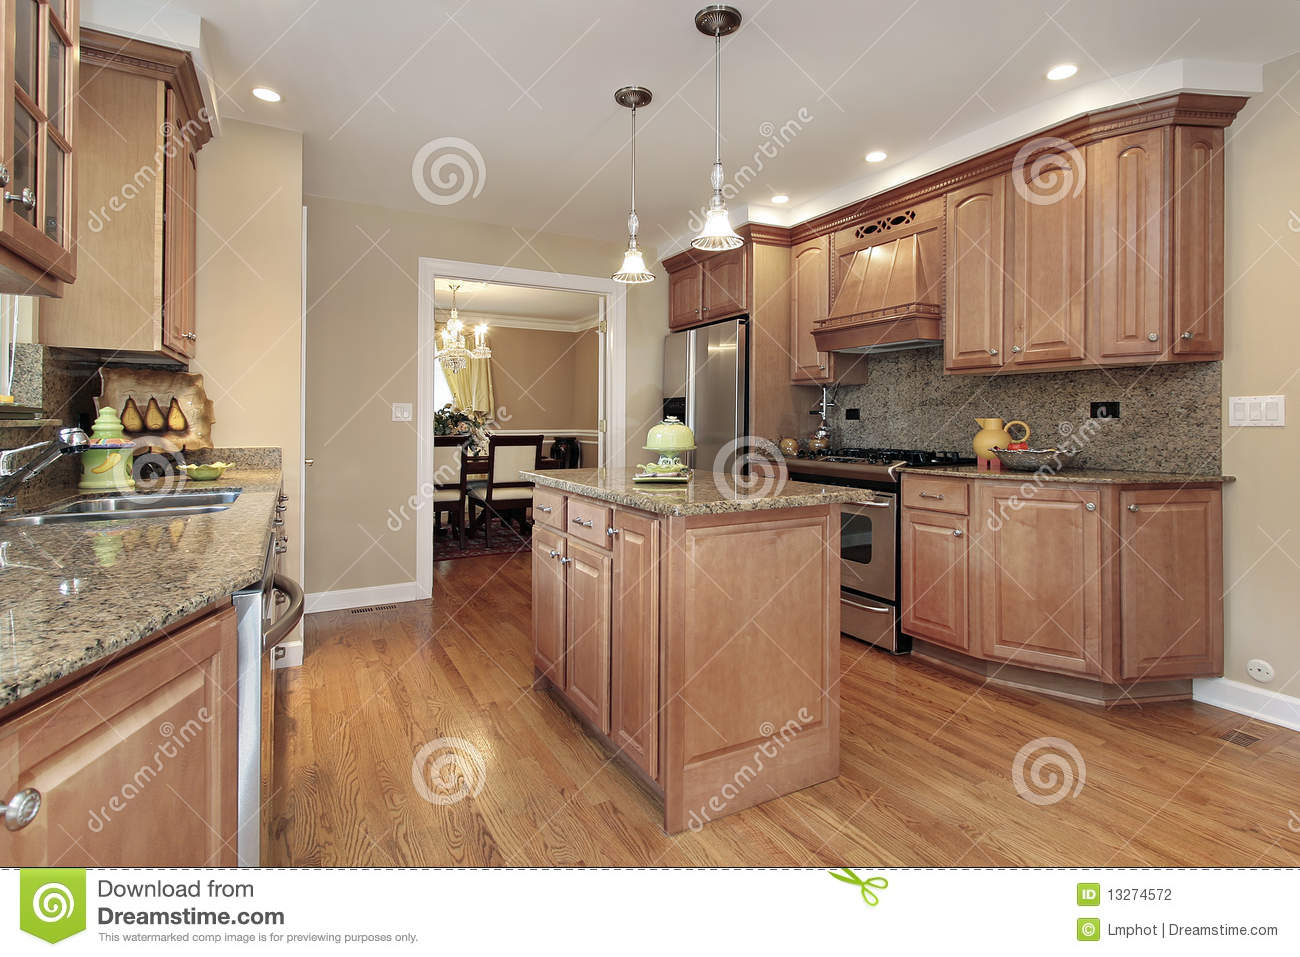 center islands in kitchens kitchen with center island stock photography image 13274572 5166